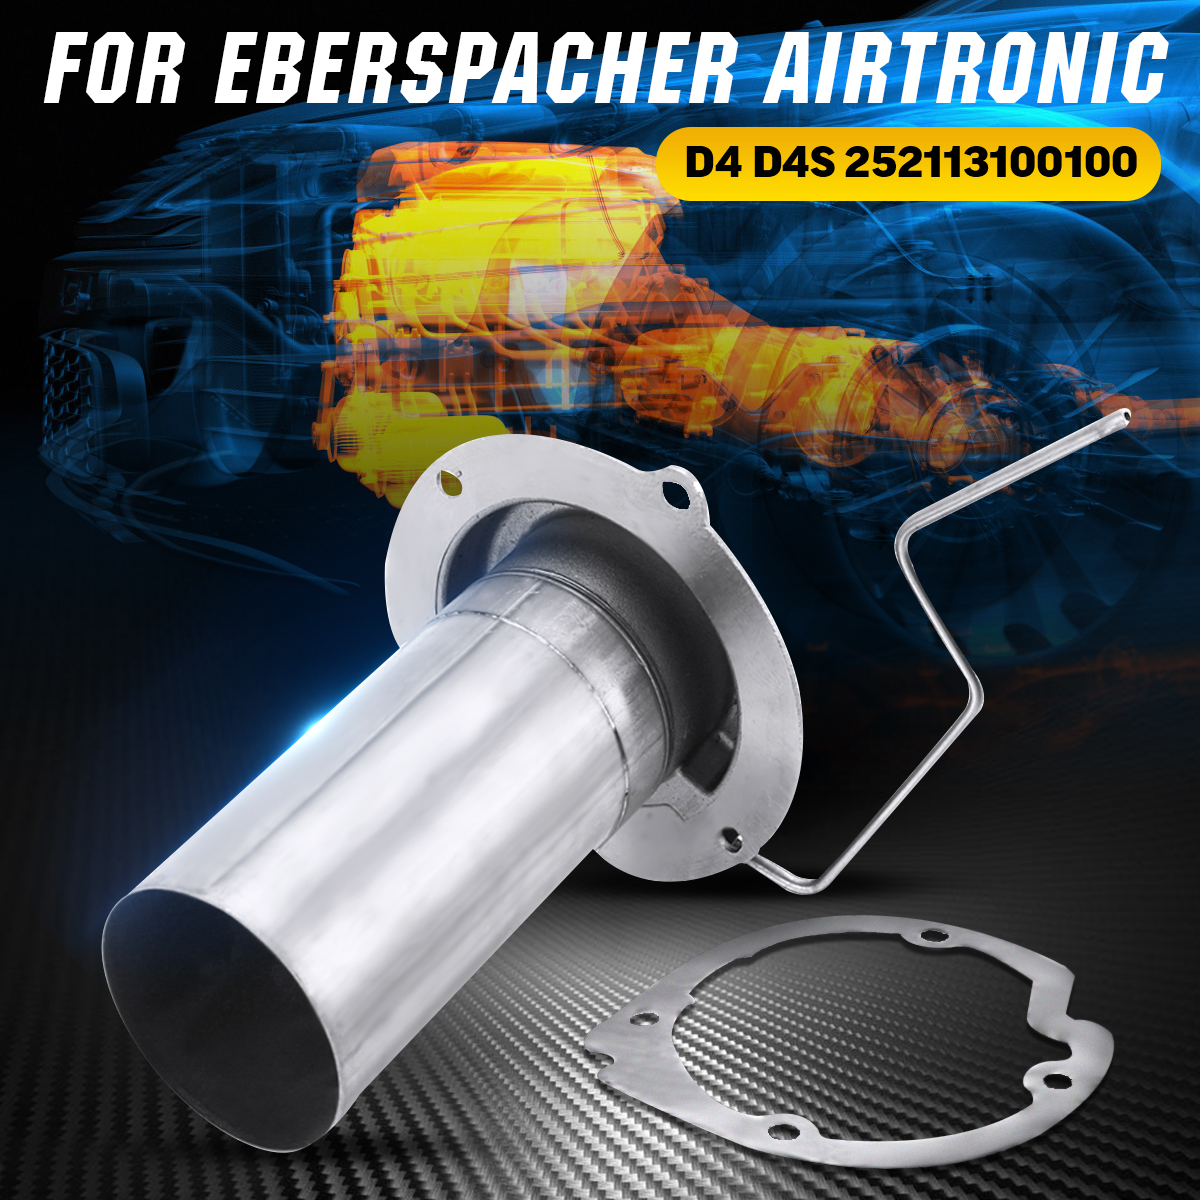 Parking Heater Burner Insert Torches Combustion Chamber Combustor Burner Gaskets 252113100100 For Eberspacher Airtronic D4 D4S